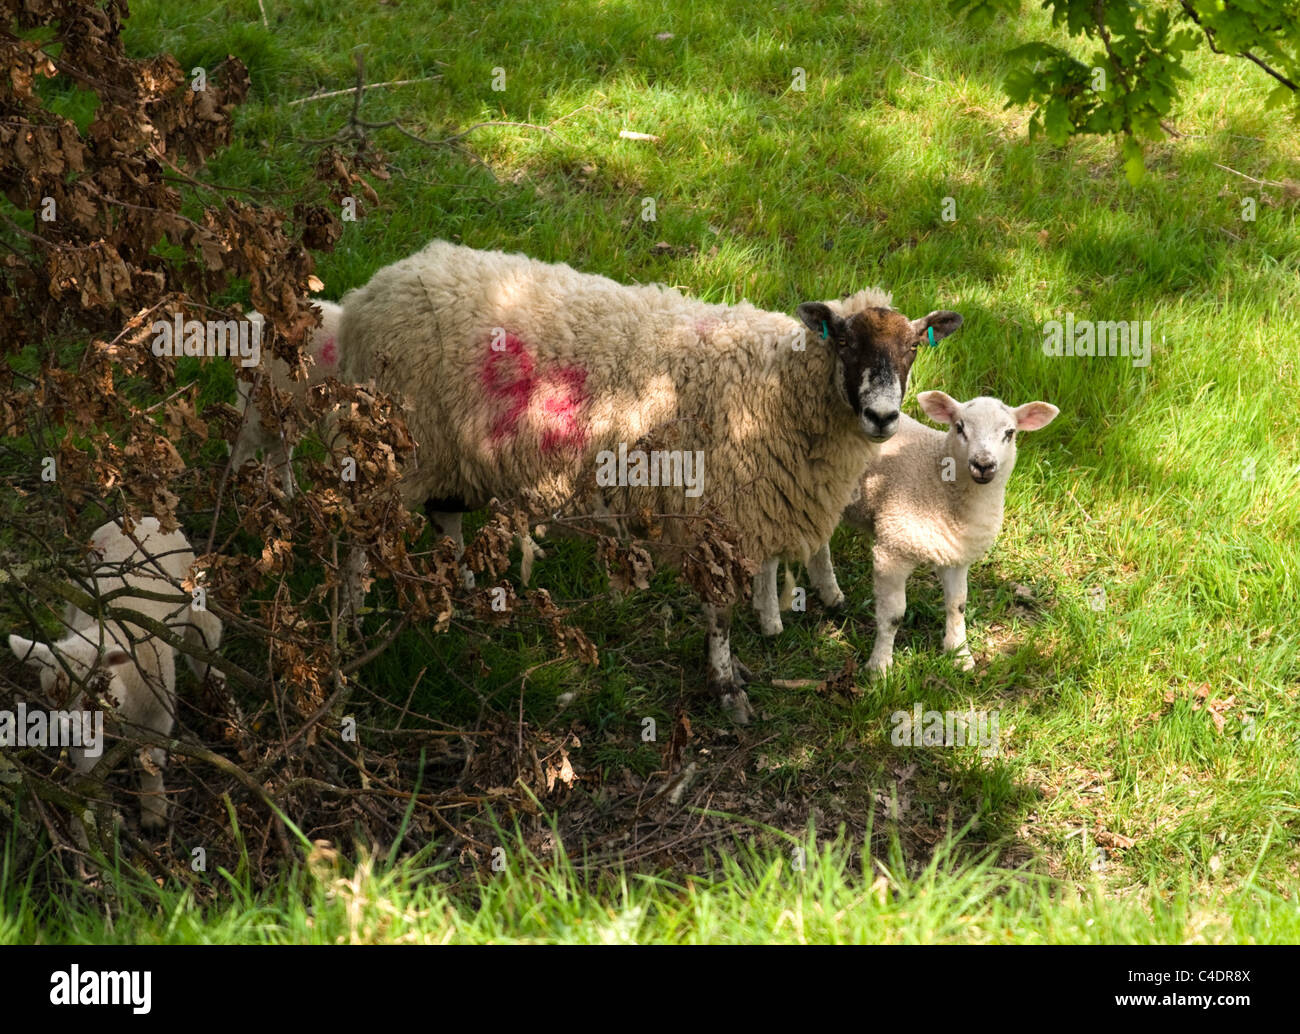 Ewe and lamb - Stock Image